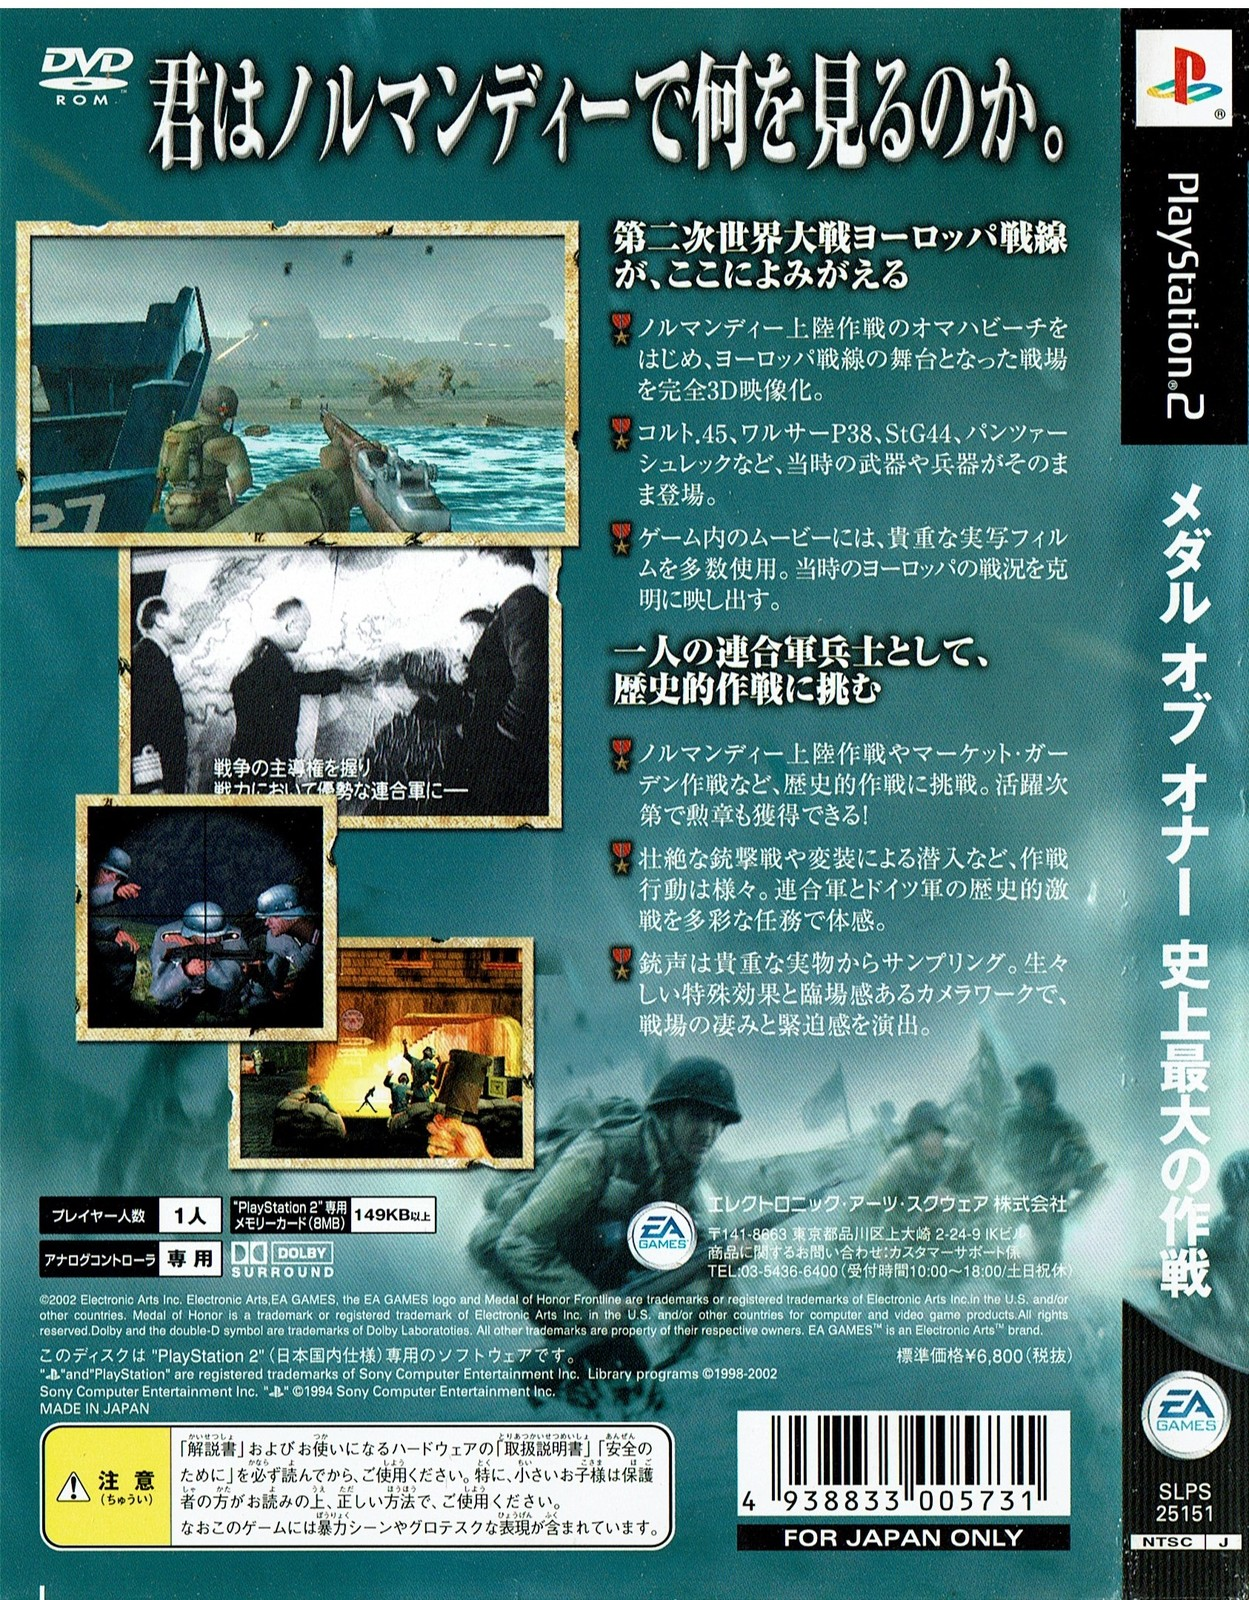 Medal of Honor (SLPS-25151) PlayStation 2, PS2, Import for Japan Console